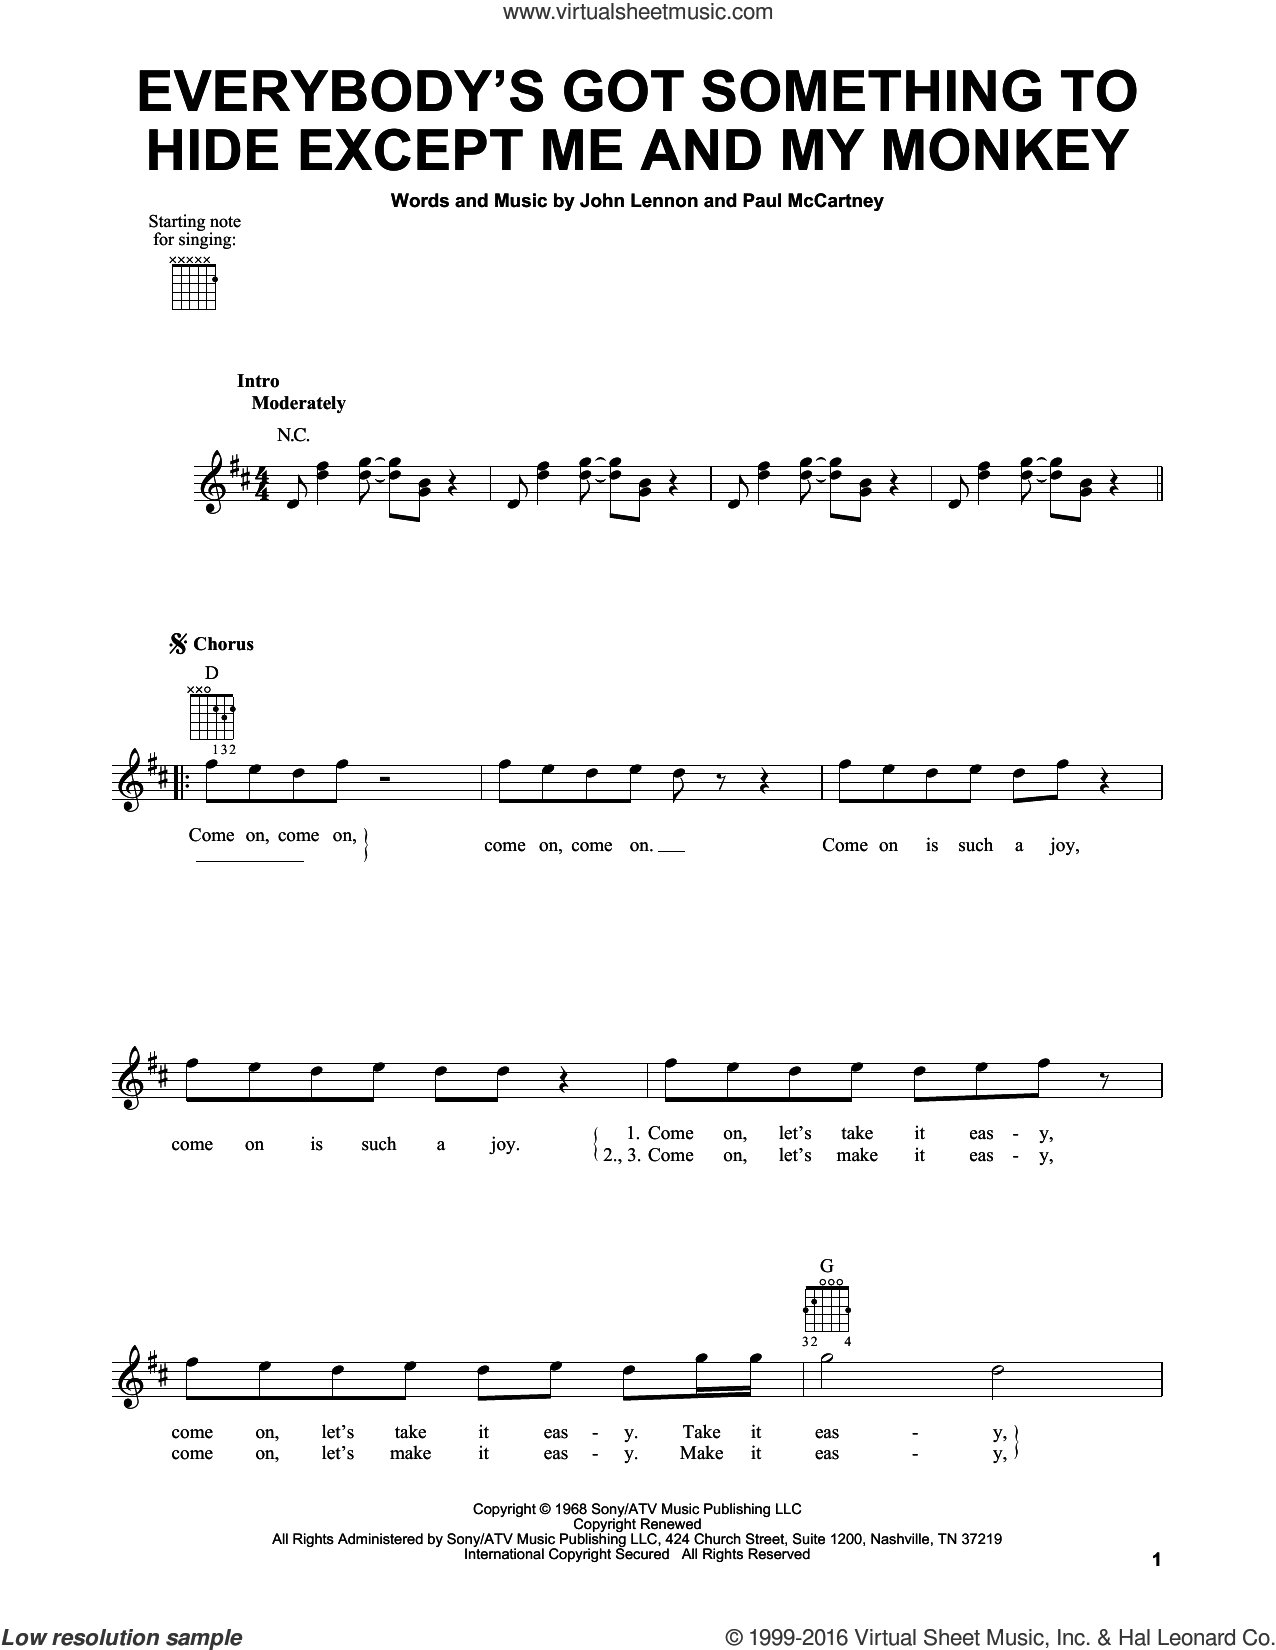 Everybody's Got Something To Hide Except Me And My Monkey sheet music for guitar solo (chords) by The Beatles, John Lennon and Paul McCartney, easy guitar (chords)